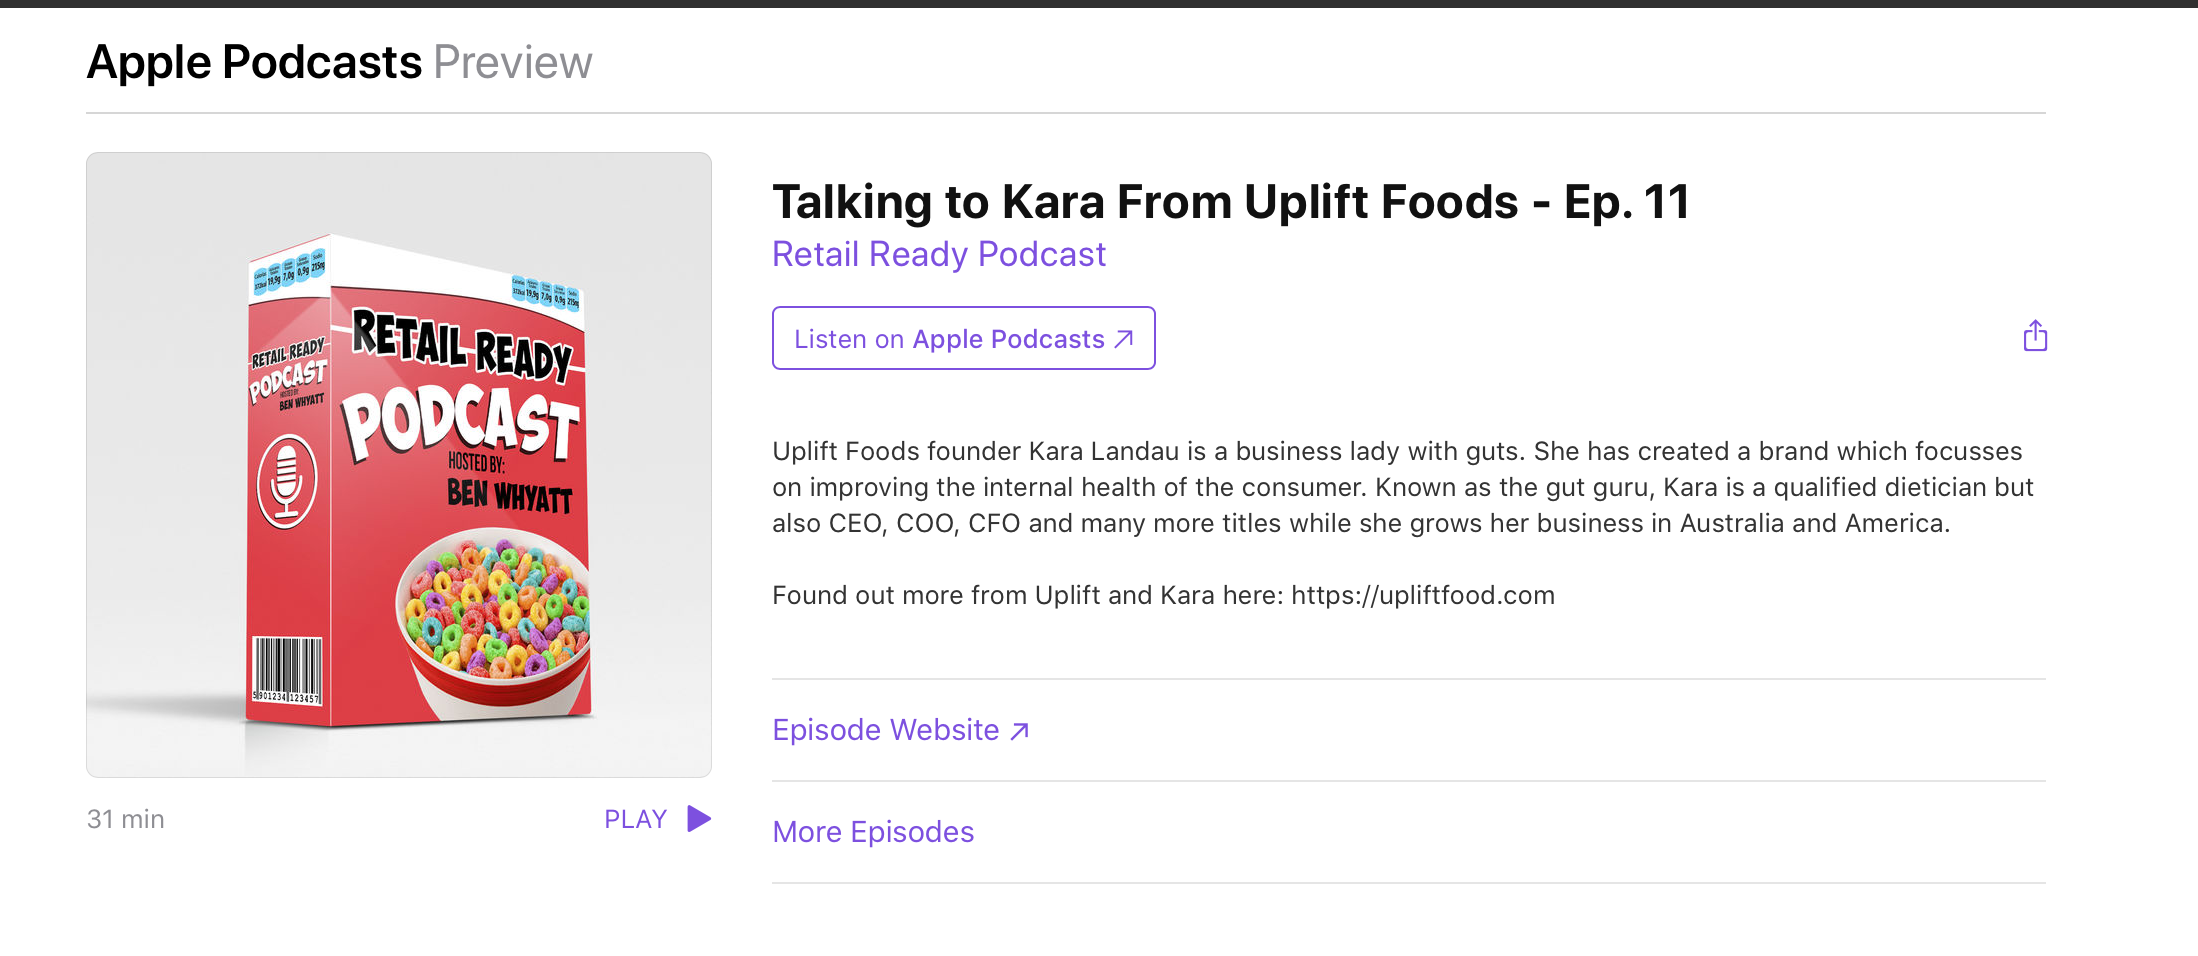 uplift food retail ready podcast australia founder featured guest expert